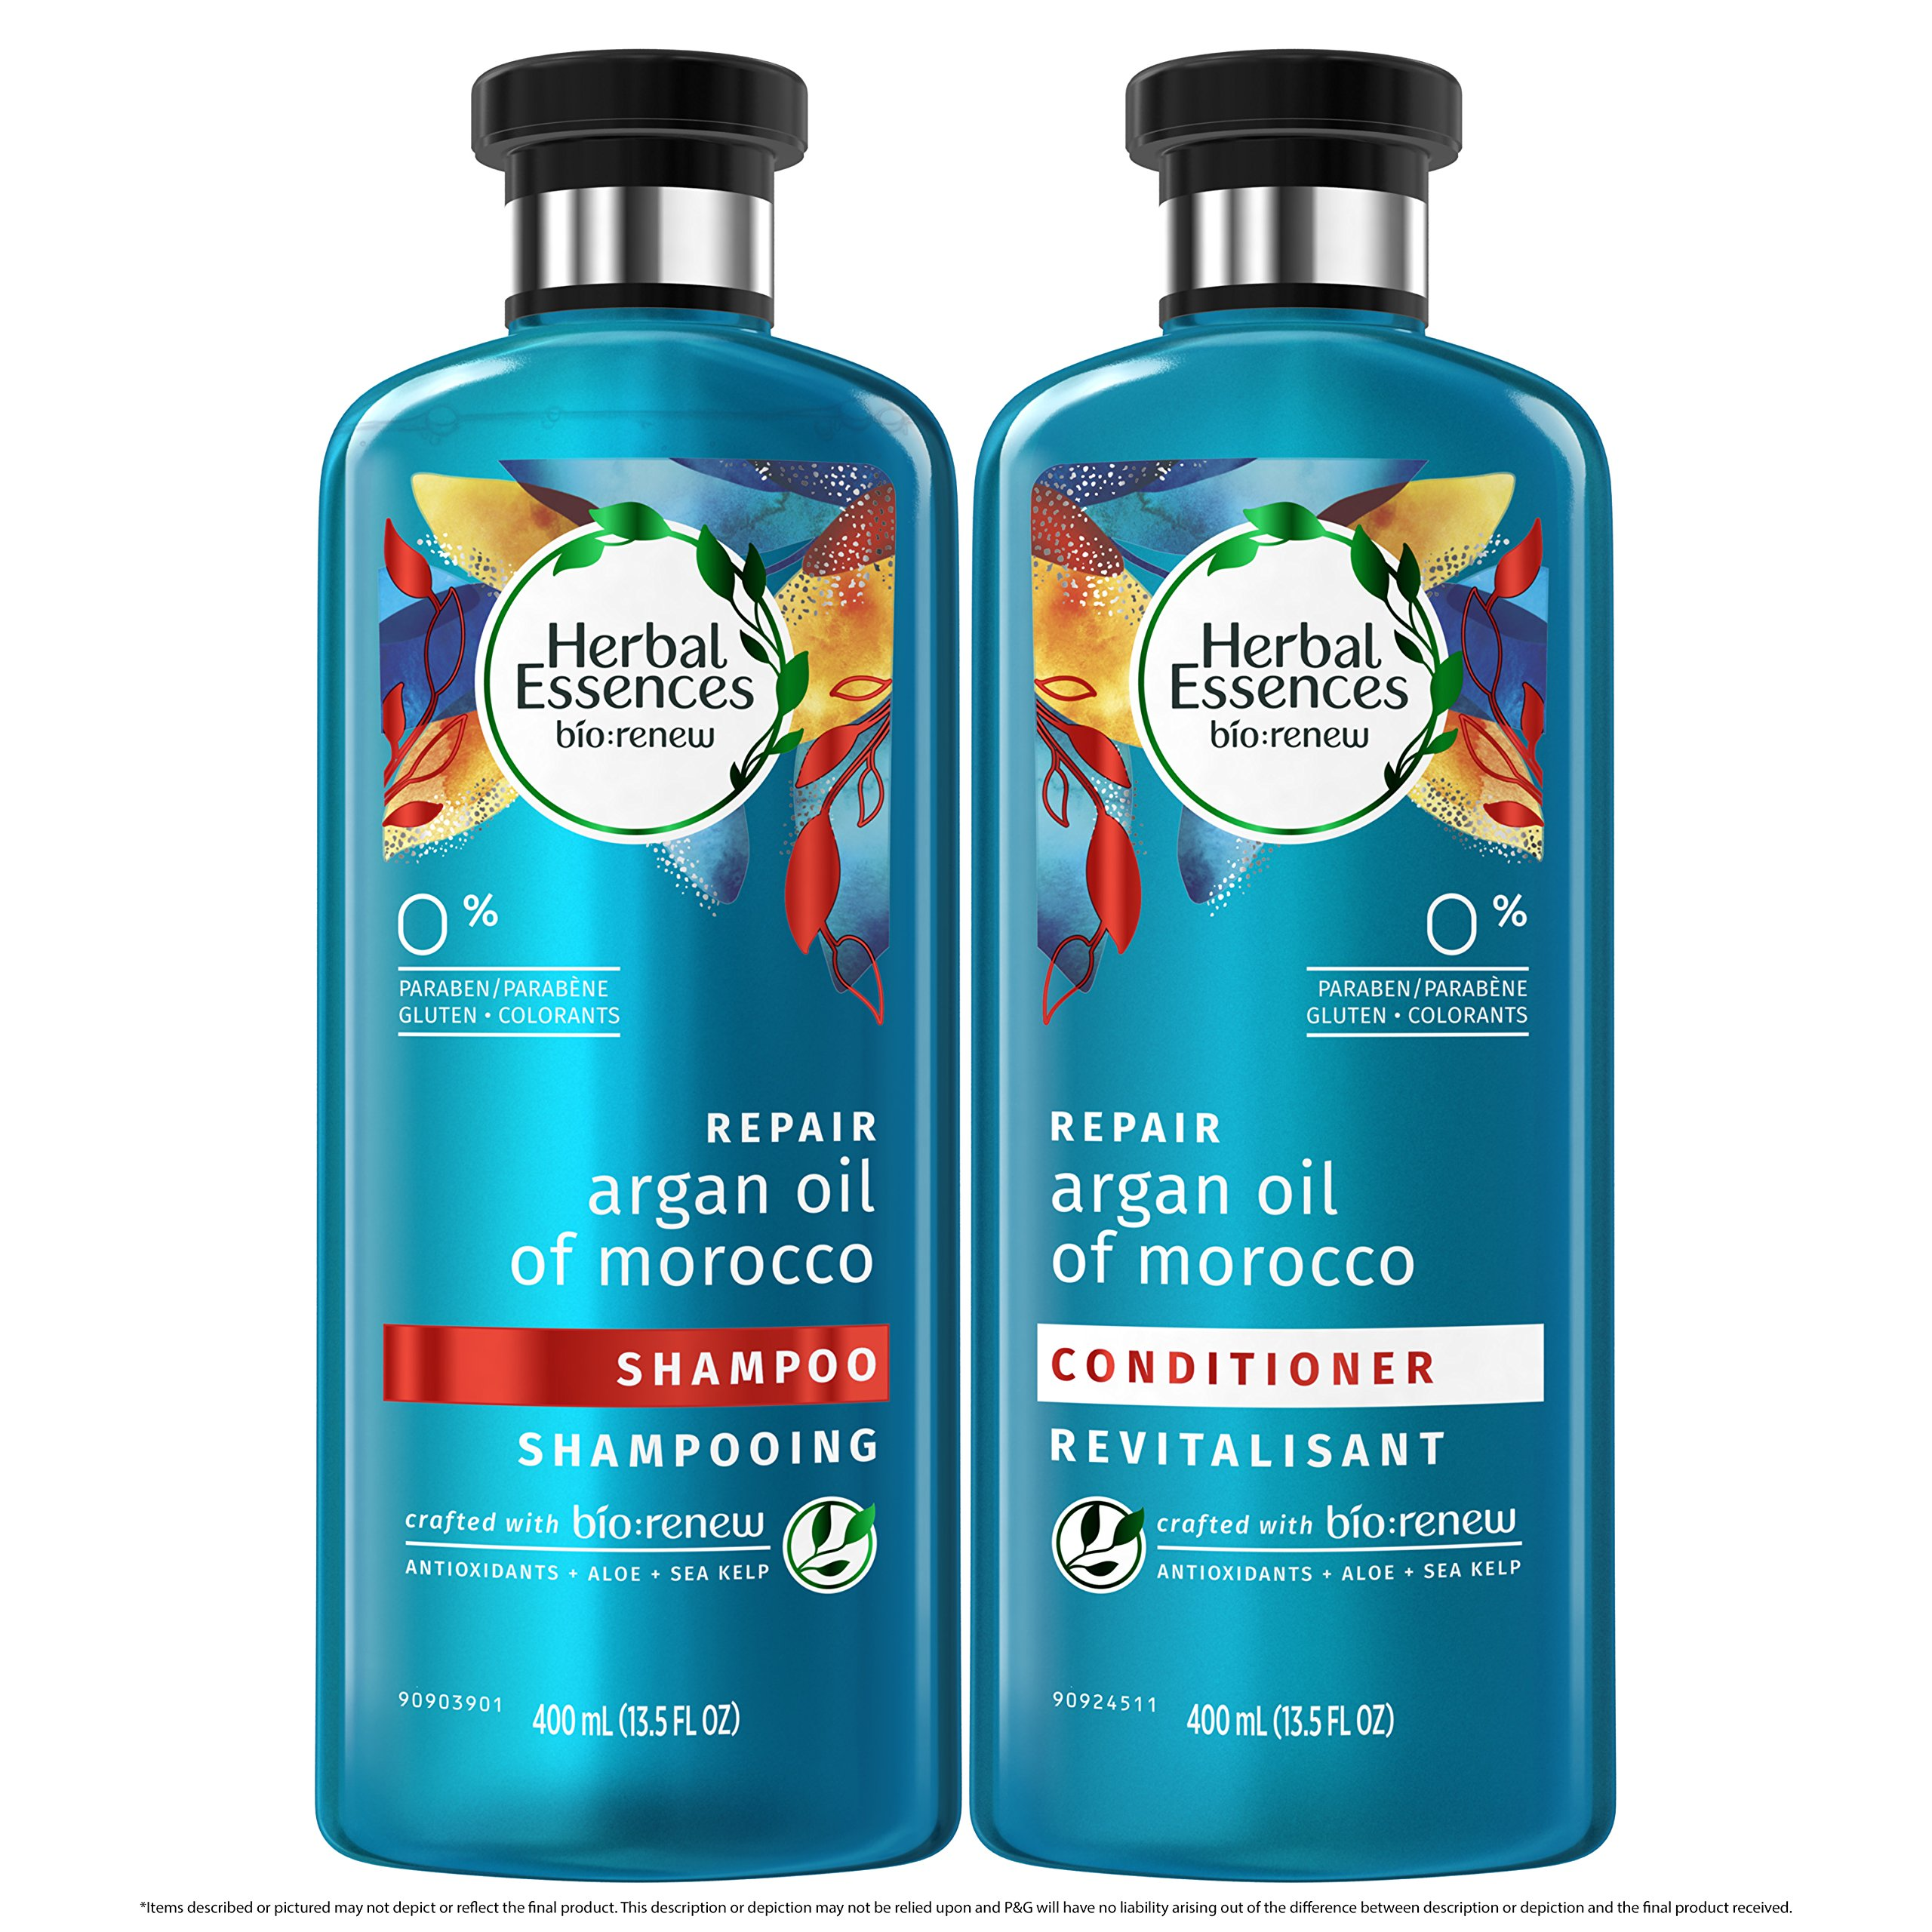 Herbal Essences Argan Oil, Shampoo and Conditioner by Herbal Essences